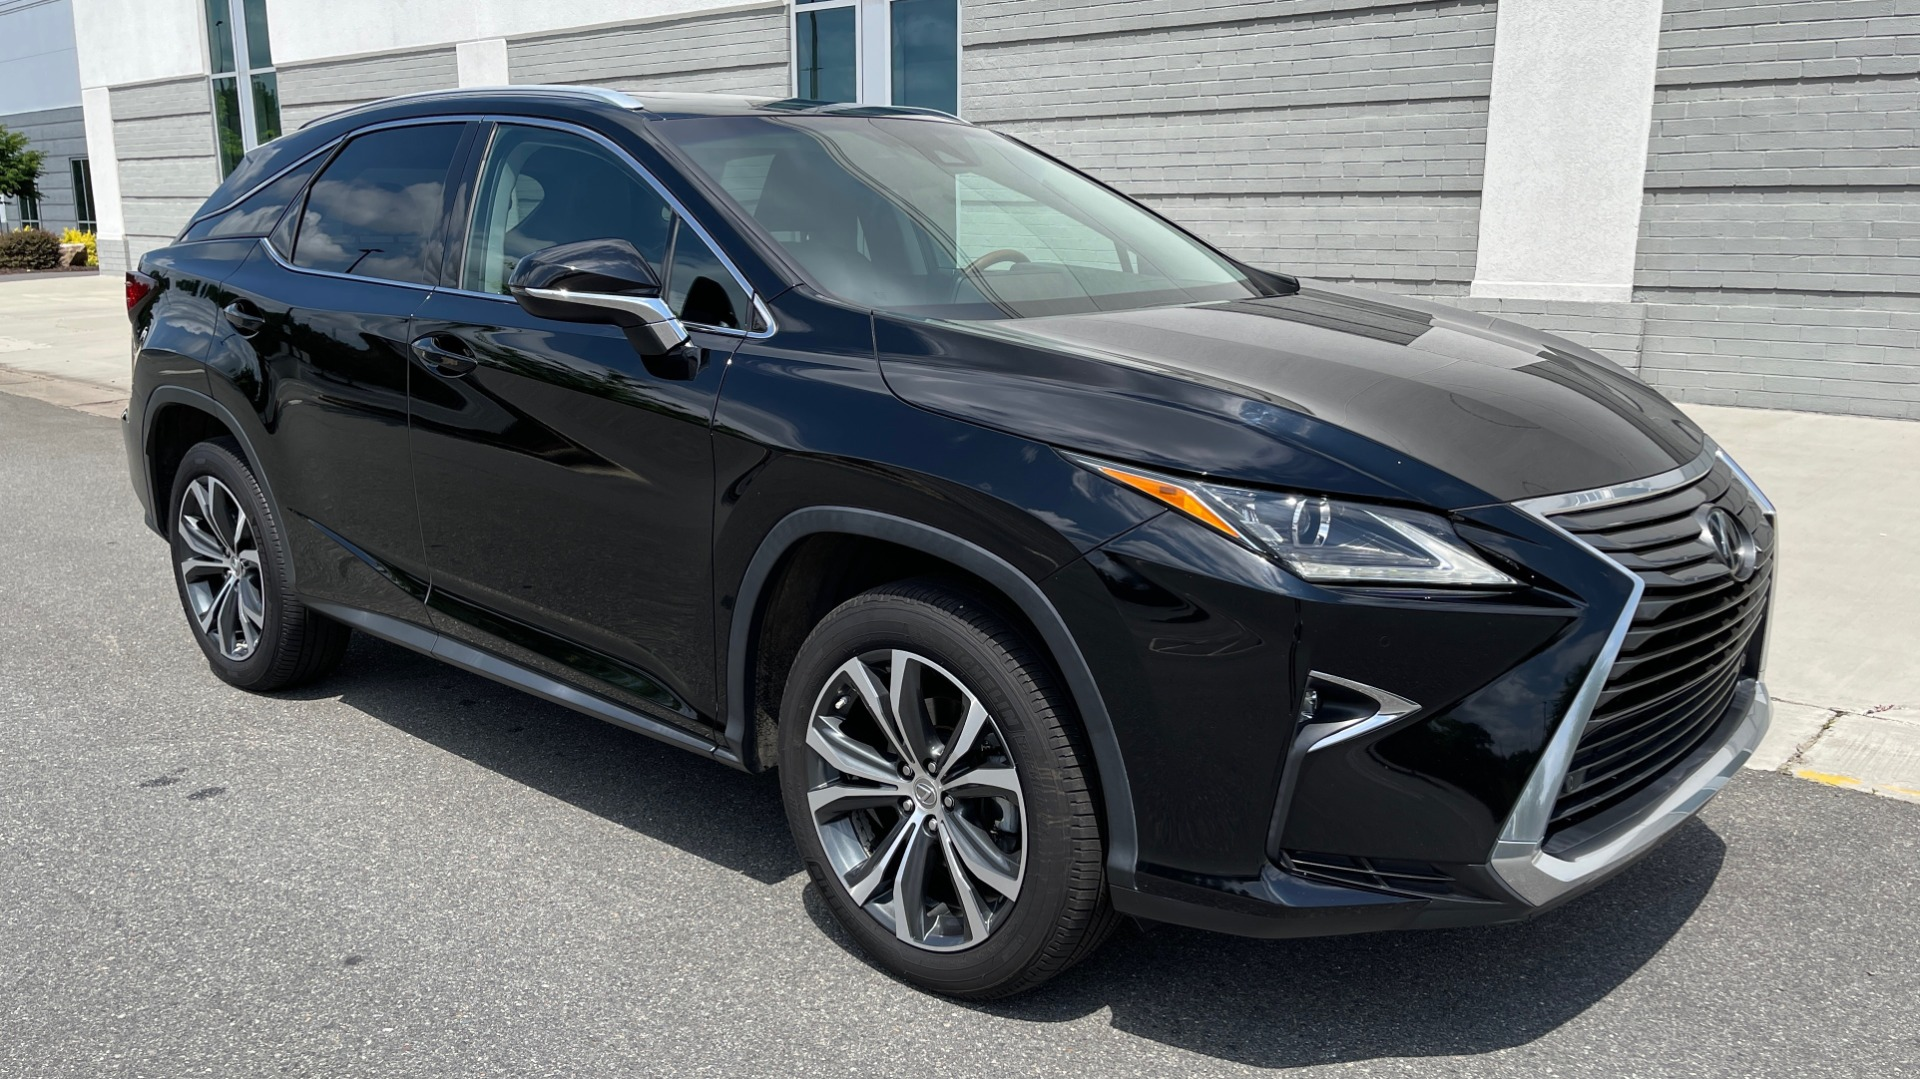 Used 2016 Lexus RX 350 PREMIUM / NAV / SUNROOF / BSM / PARK ASST / REARVIEW for sale $29,495 at Formula Imports in Charlotte NC 28227 6